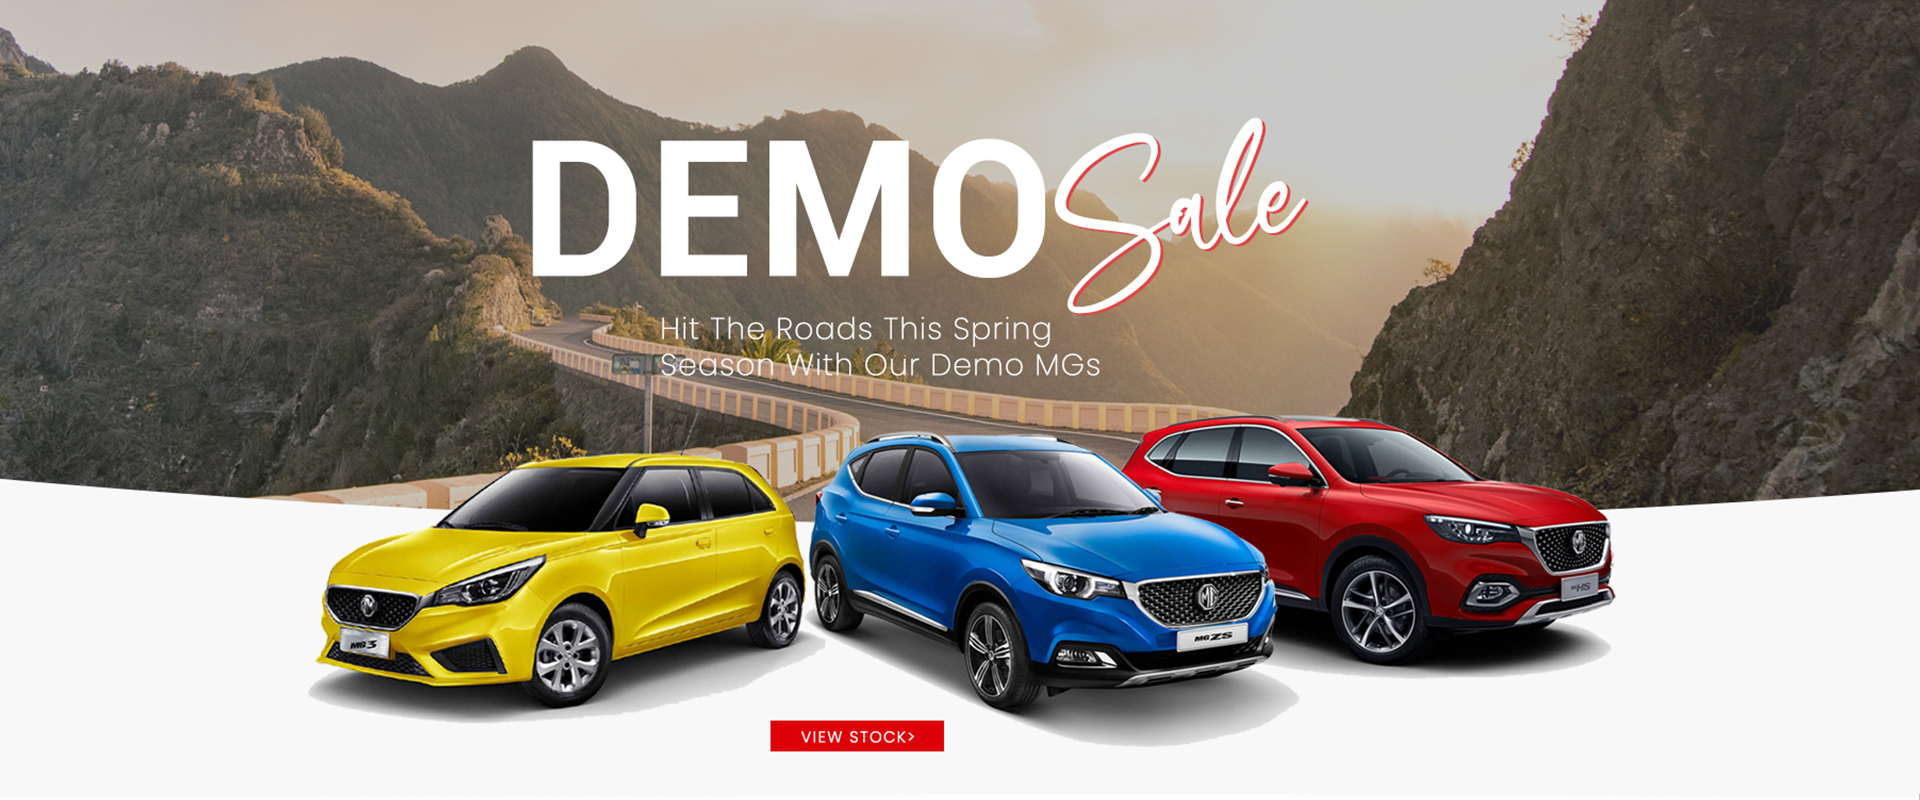 MG Parramatta is offering attractive prices on demo and used MG 3, MG HS and MG ZS to clear the stock.